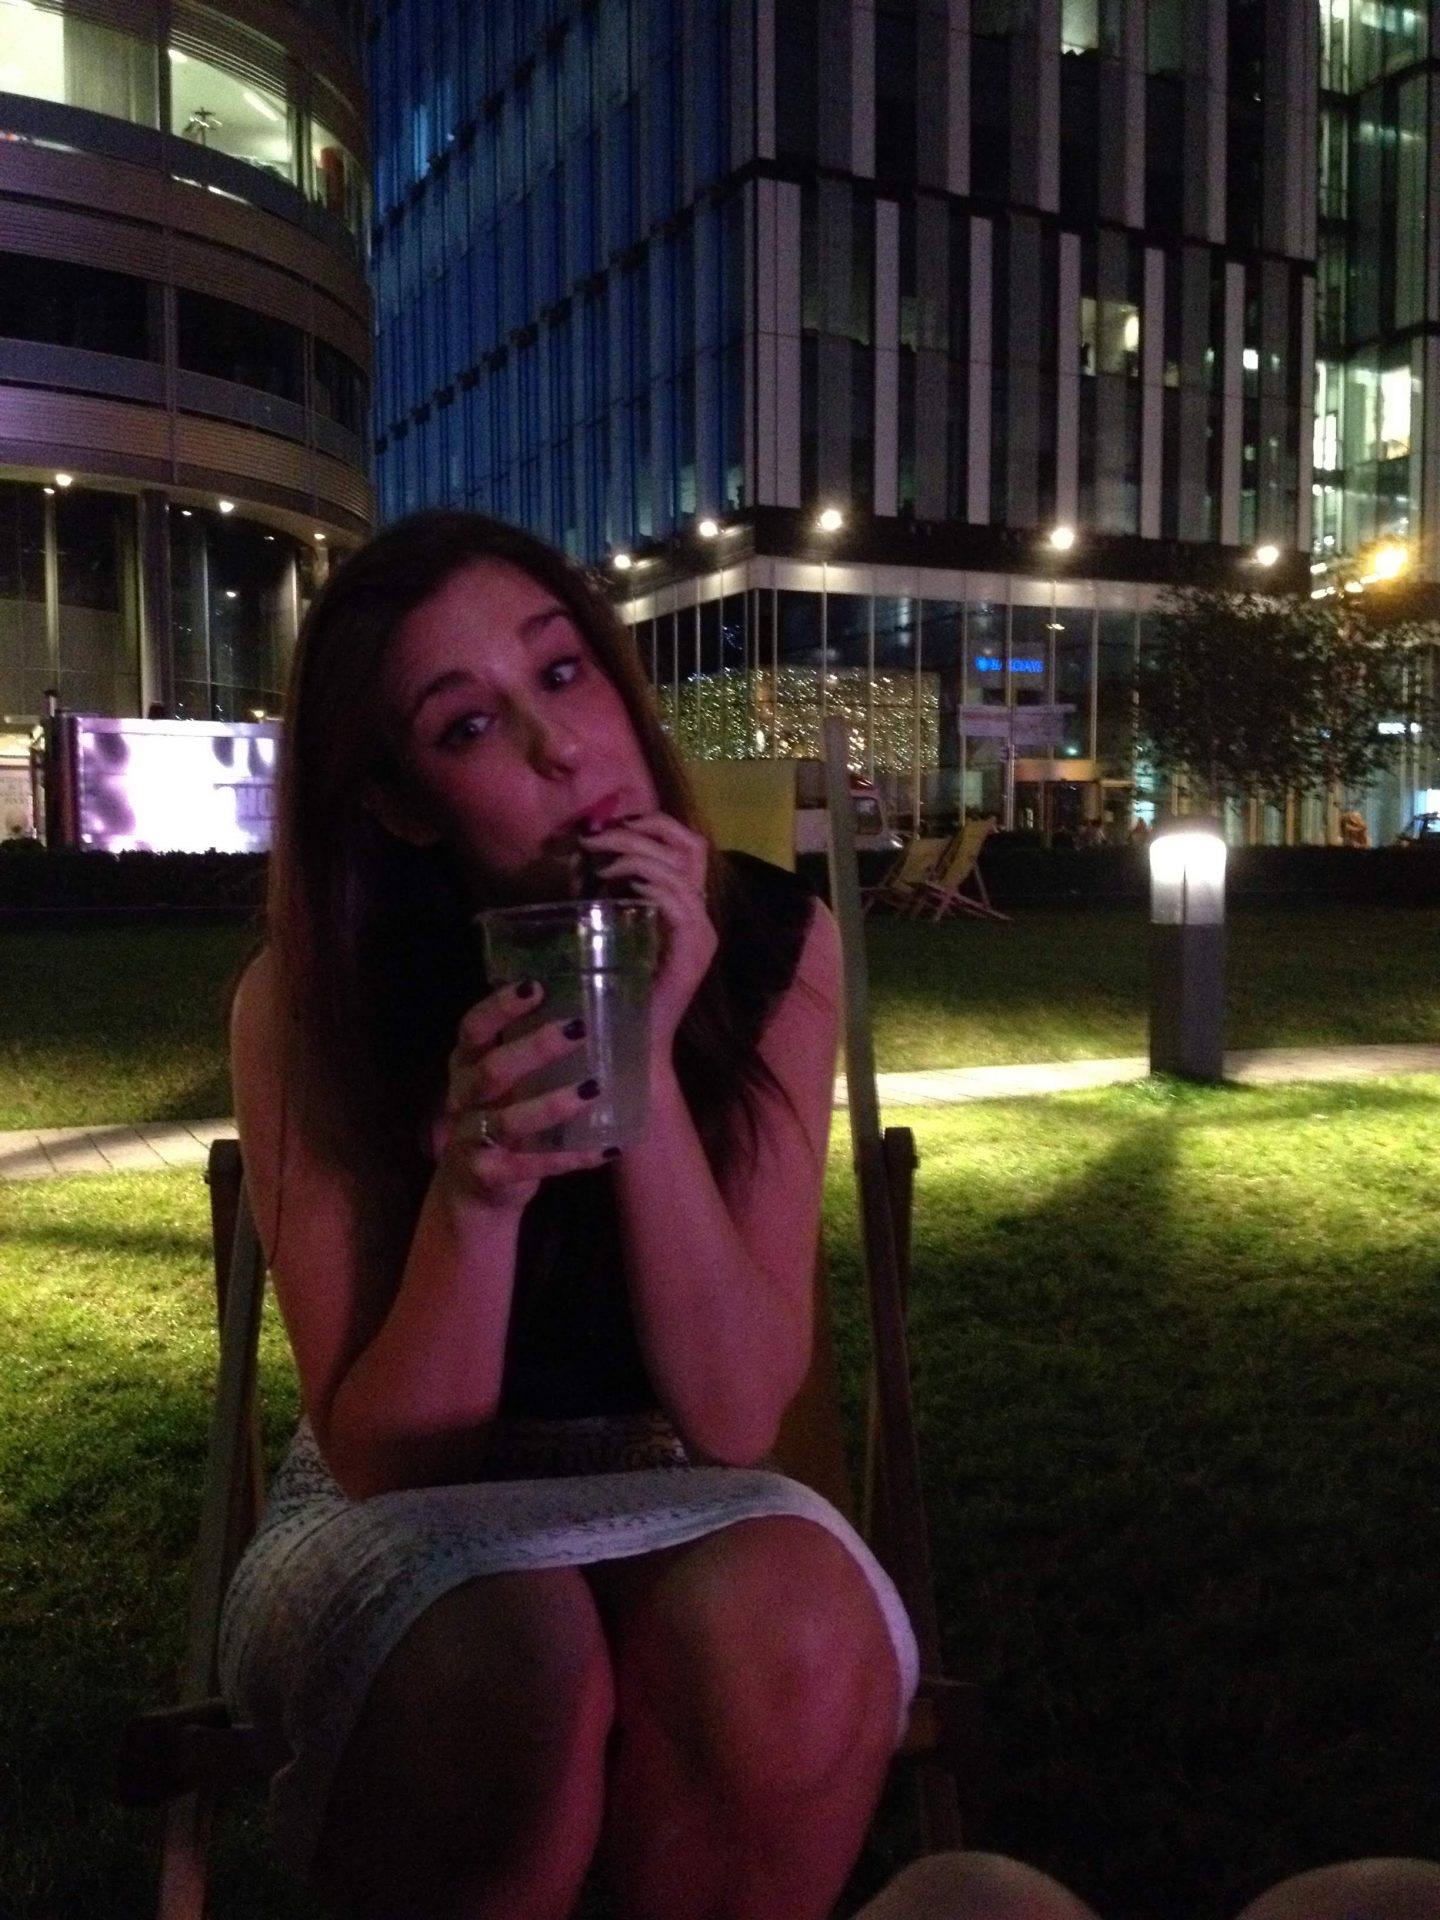 Drinks in Spinningfields, Manchester